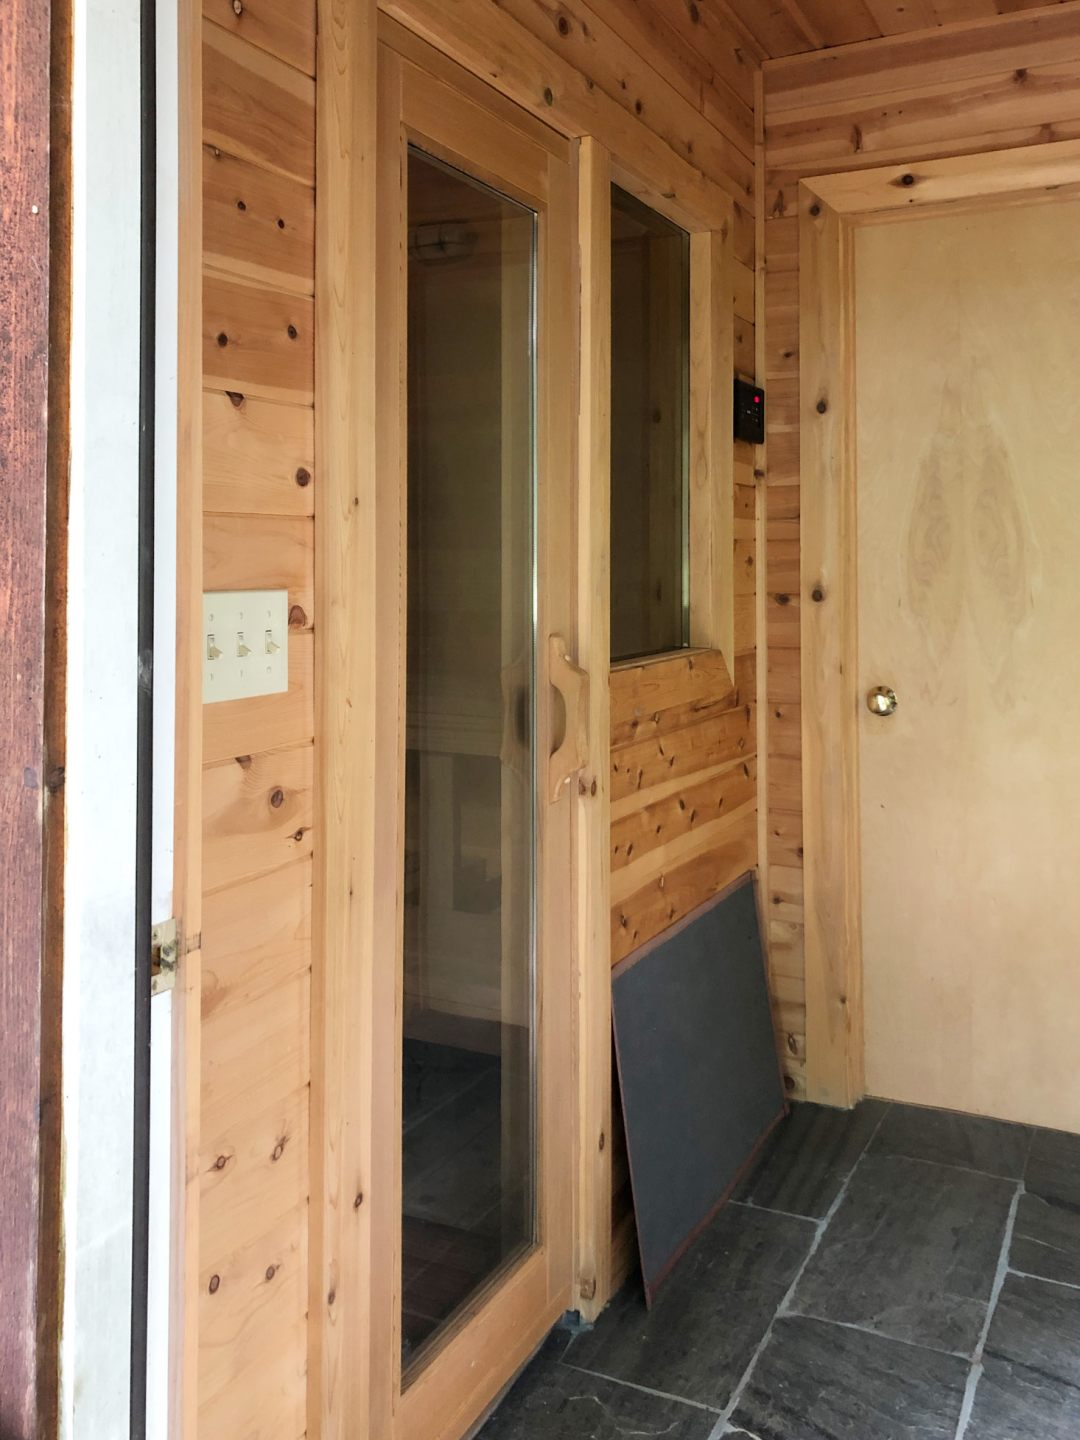 Wood interior of outdoor sauna